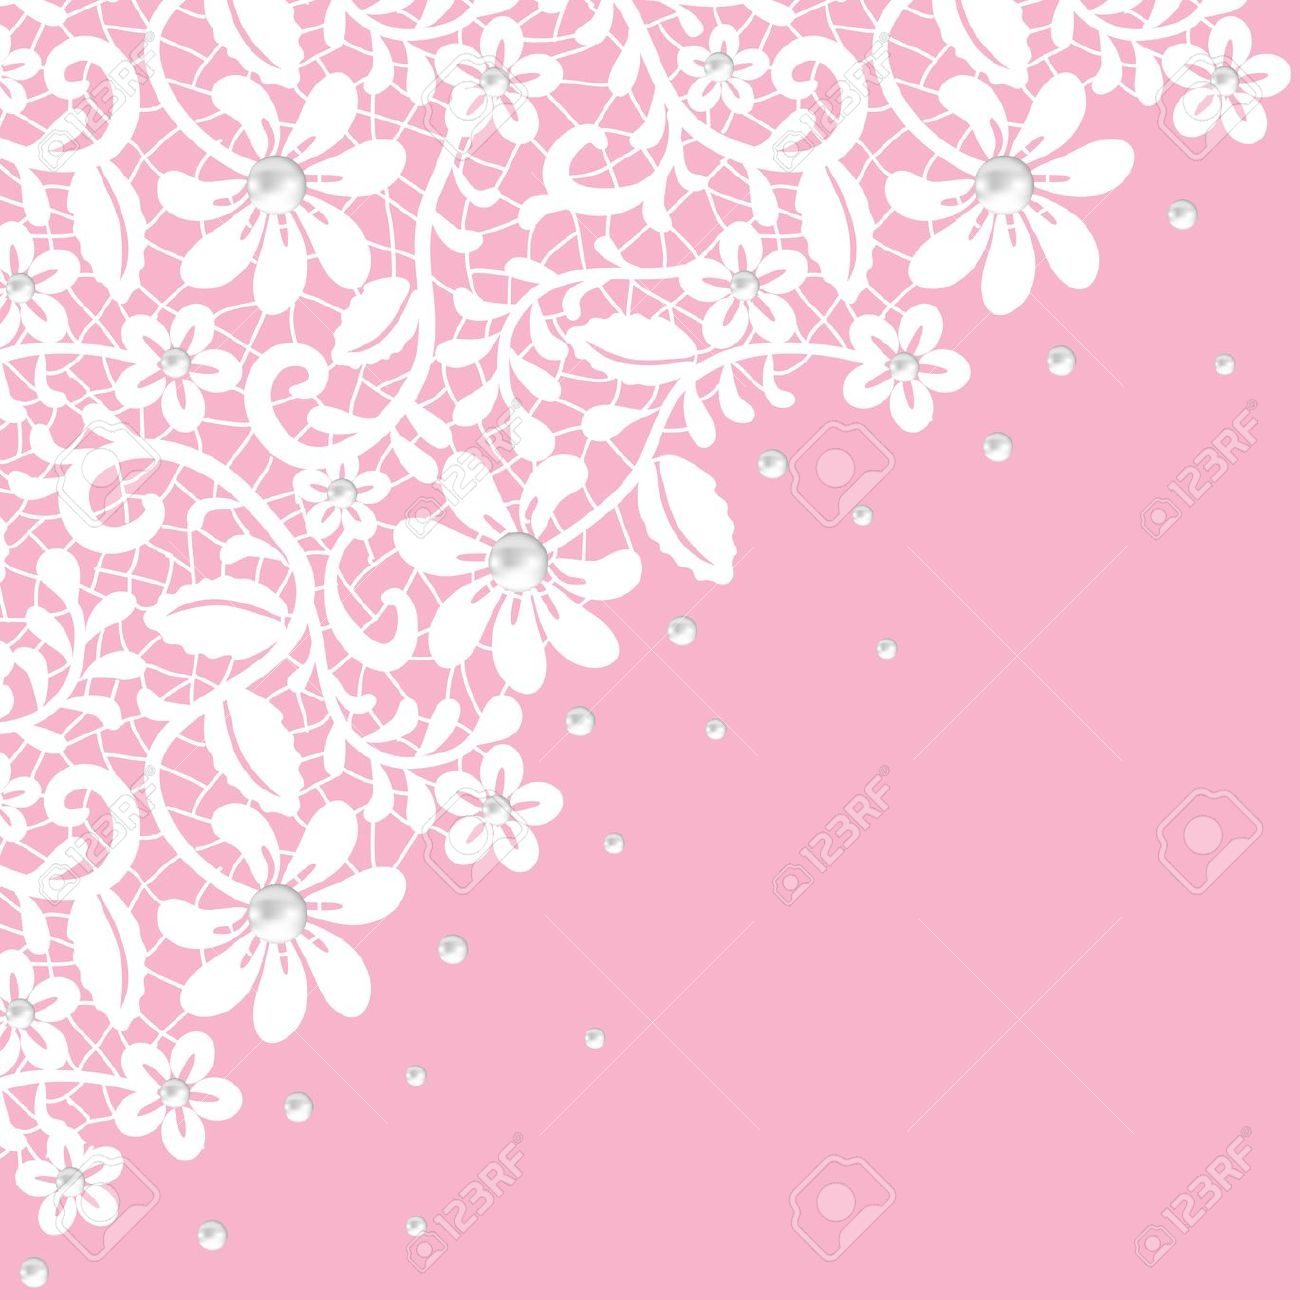 Free Pink Lace Png, Download Free Clip Art, Free Clip Art on.